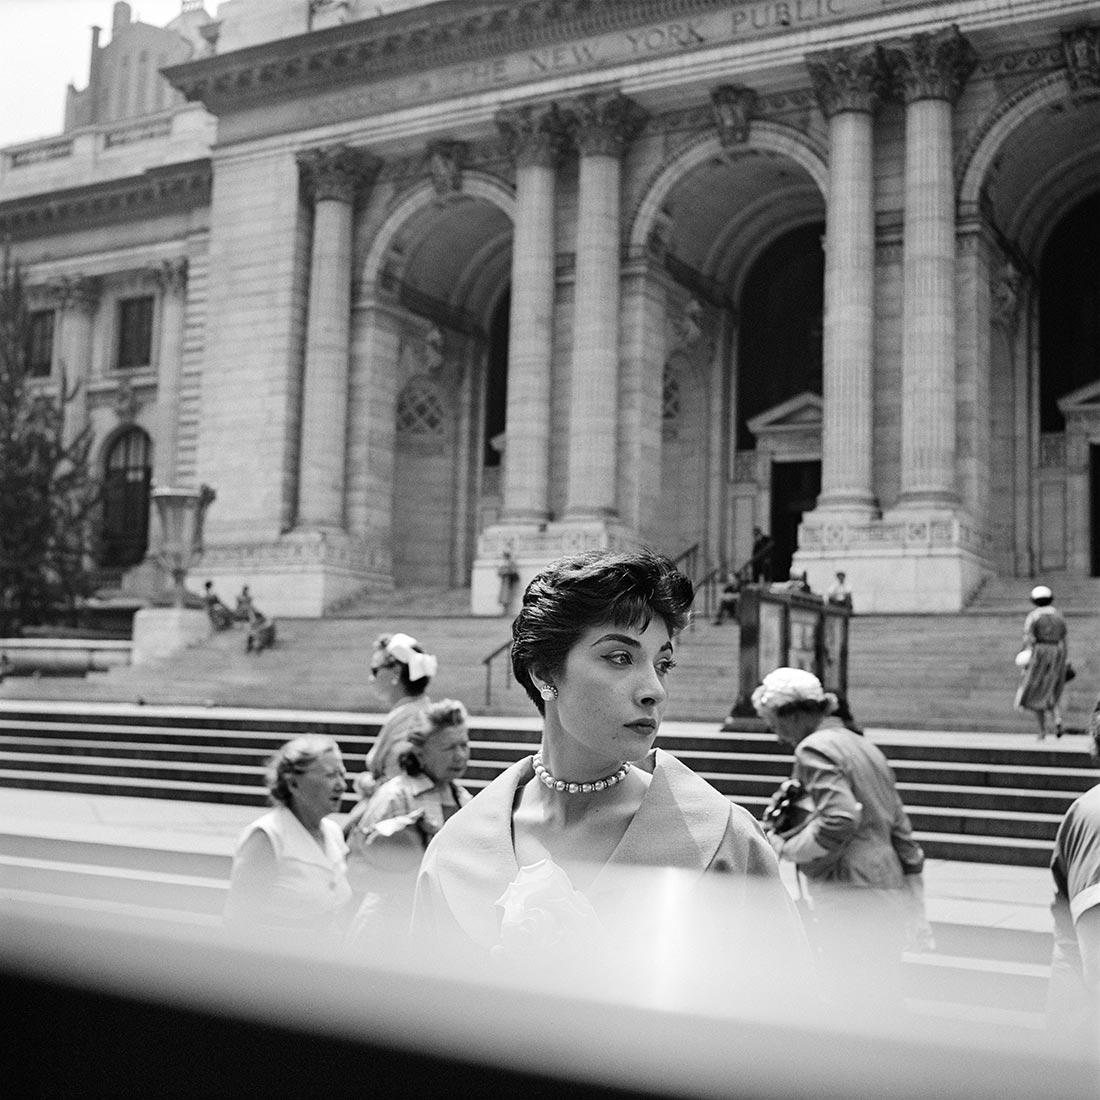 Documentary Photography - Vivian Maier